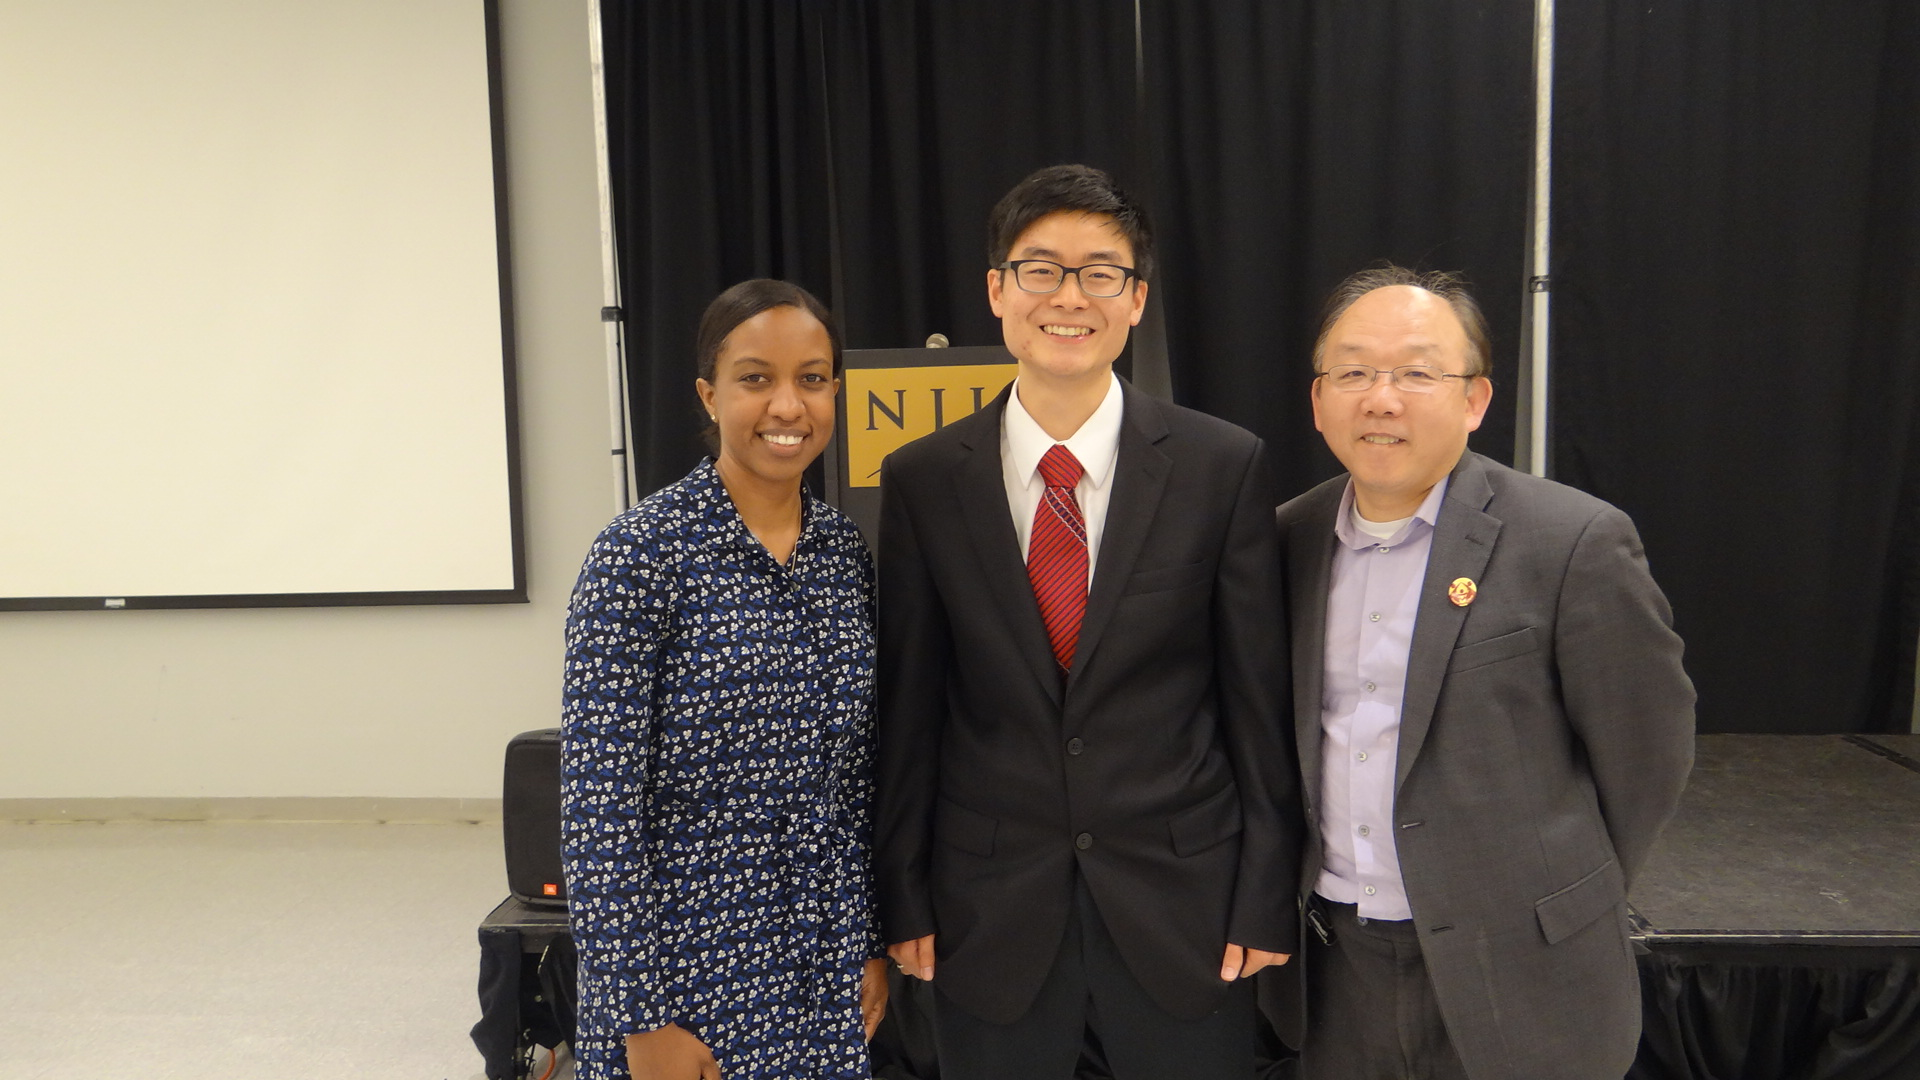 Keisetsu (middle) with Academic Advisor, Jasmine Howard, (left) and CARP NJIT Mentor, Atsushi Takino (right)